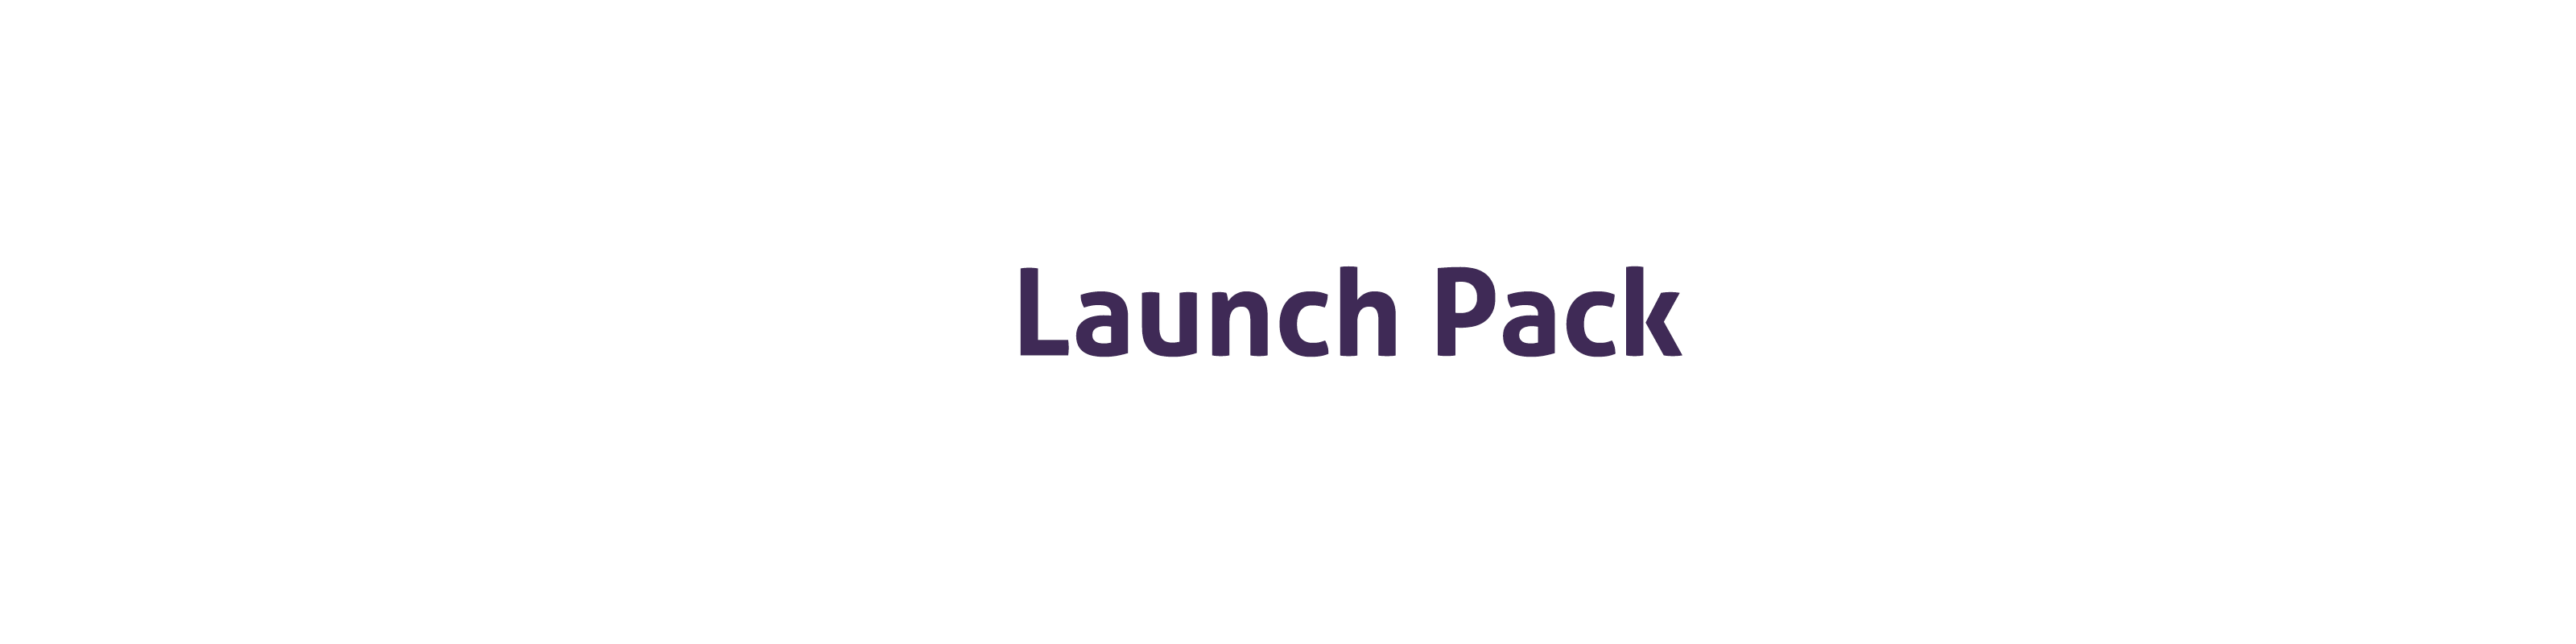 Launch Pack